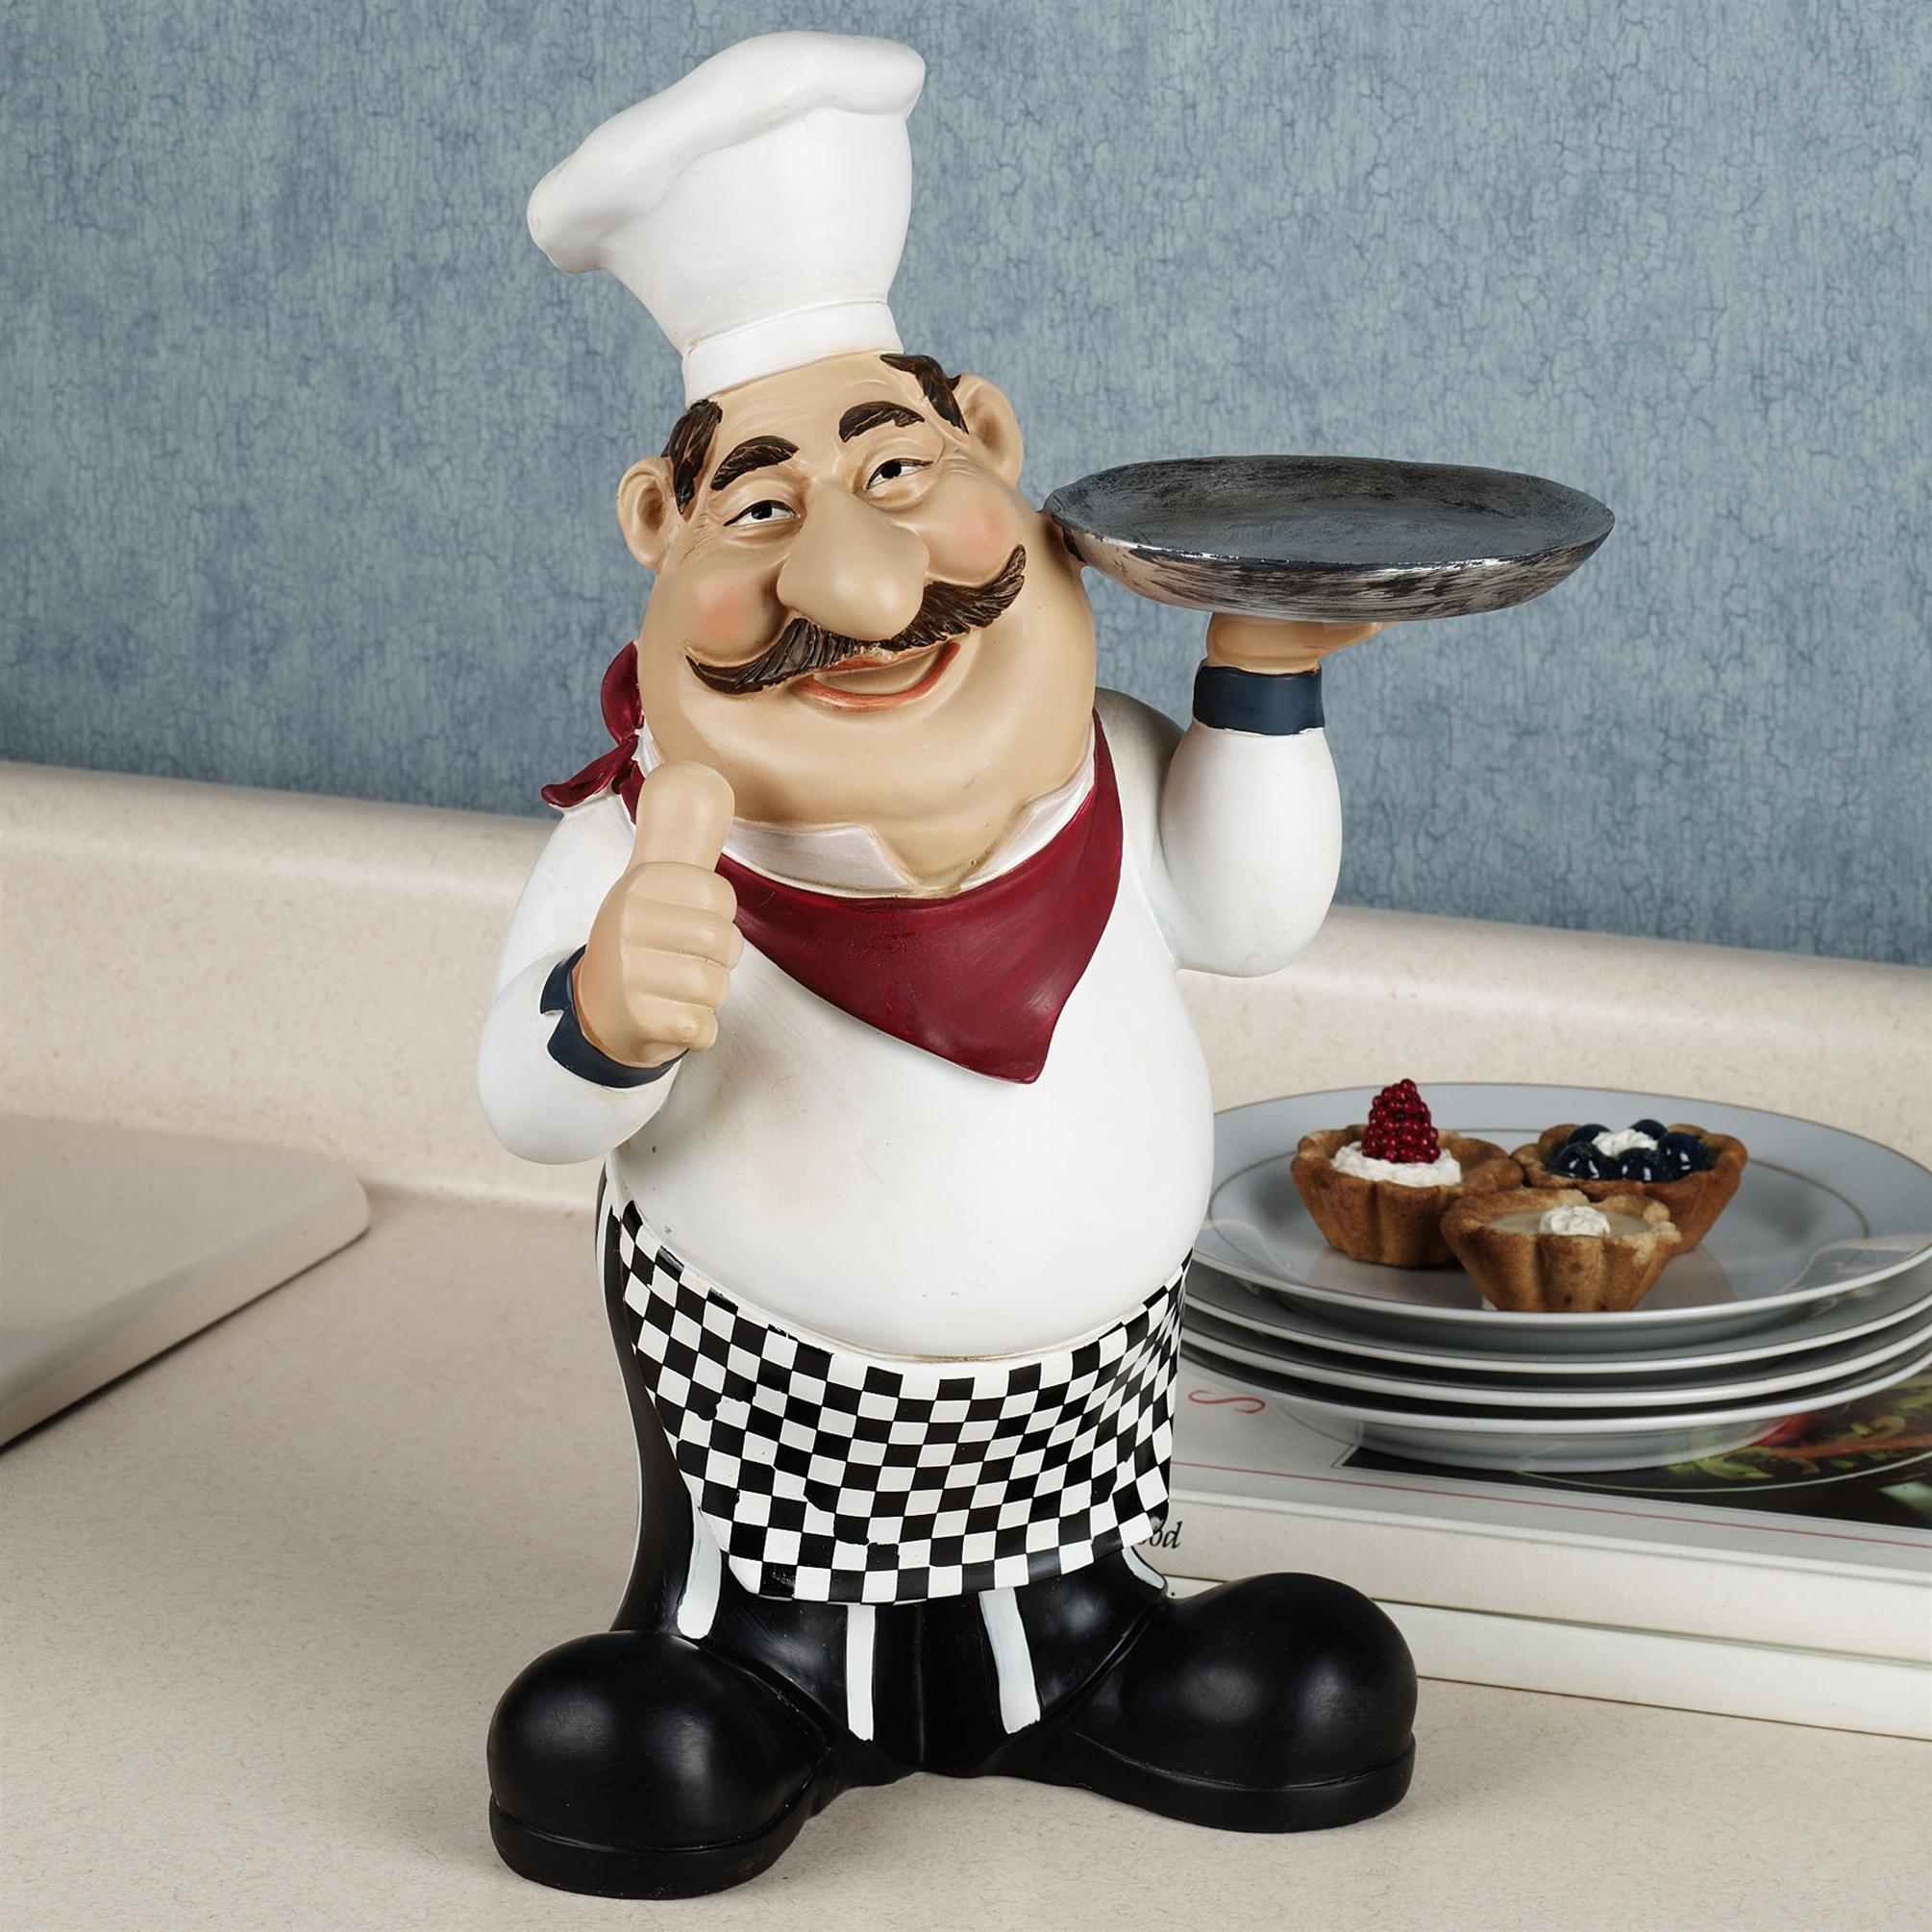 Fat Chef Decorations For Kitchen